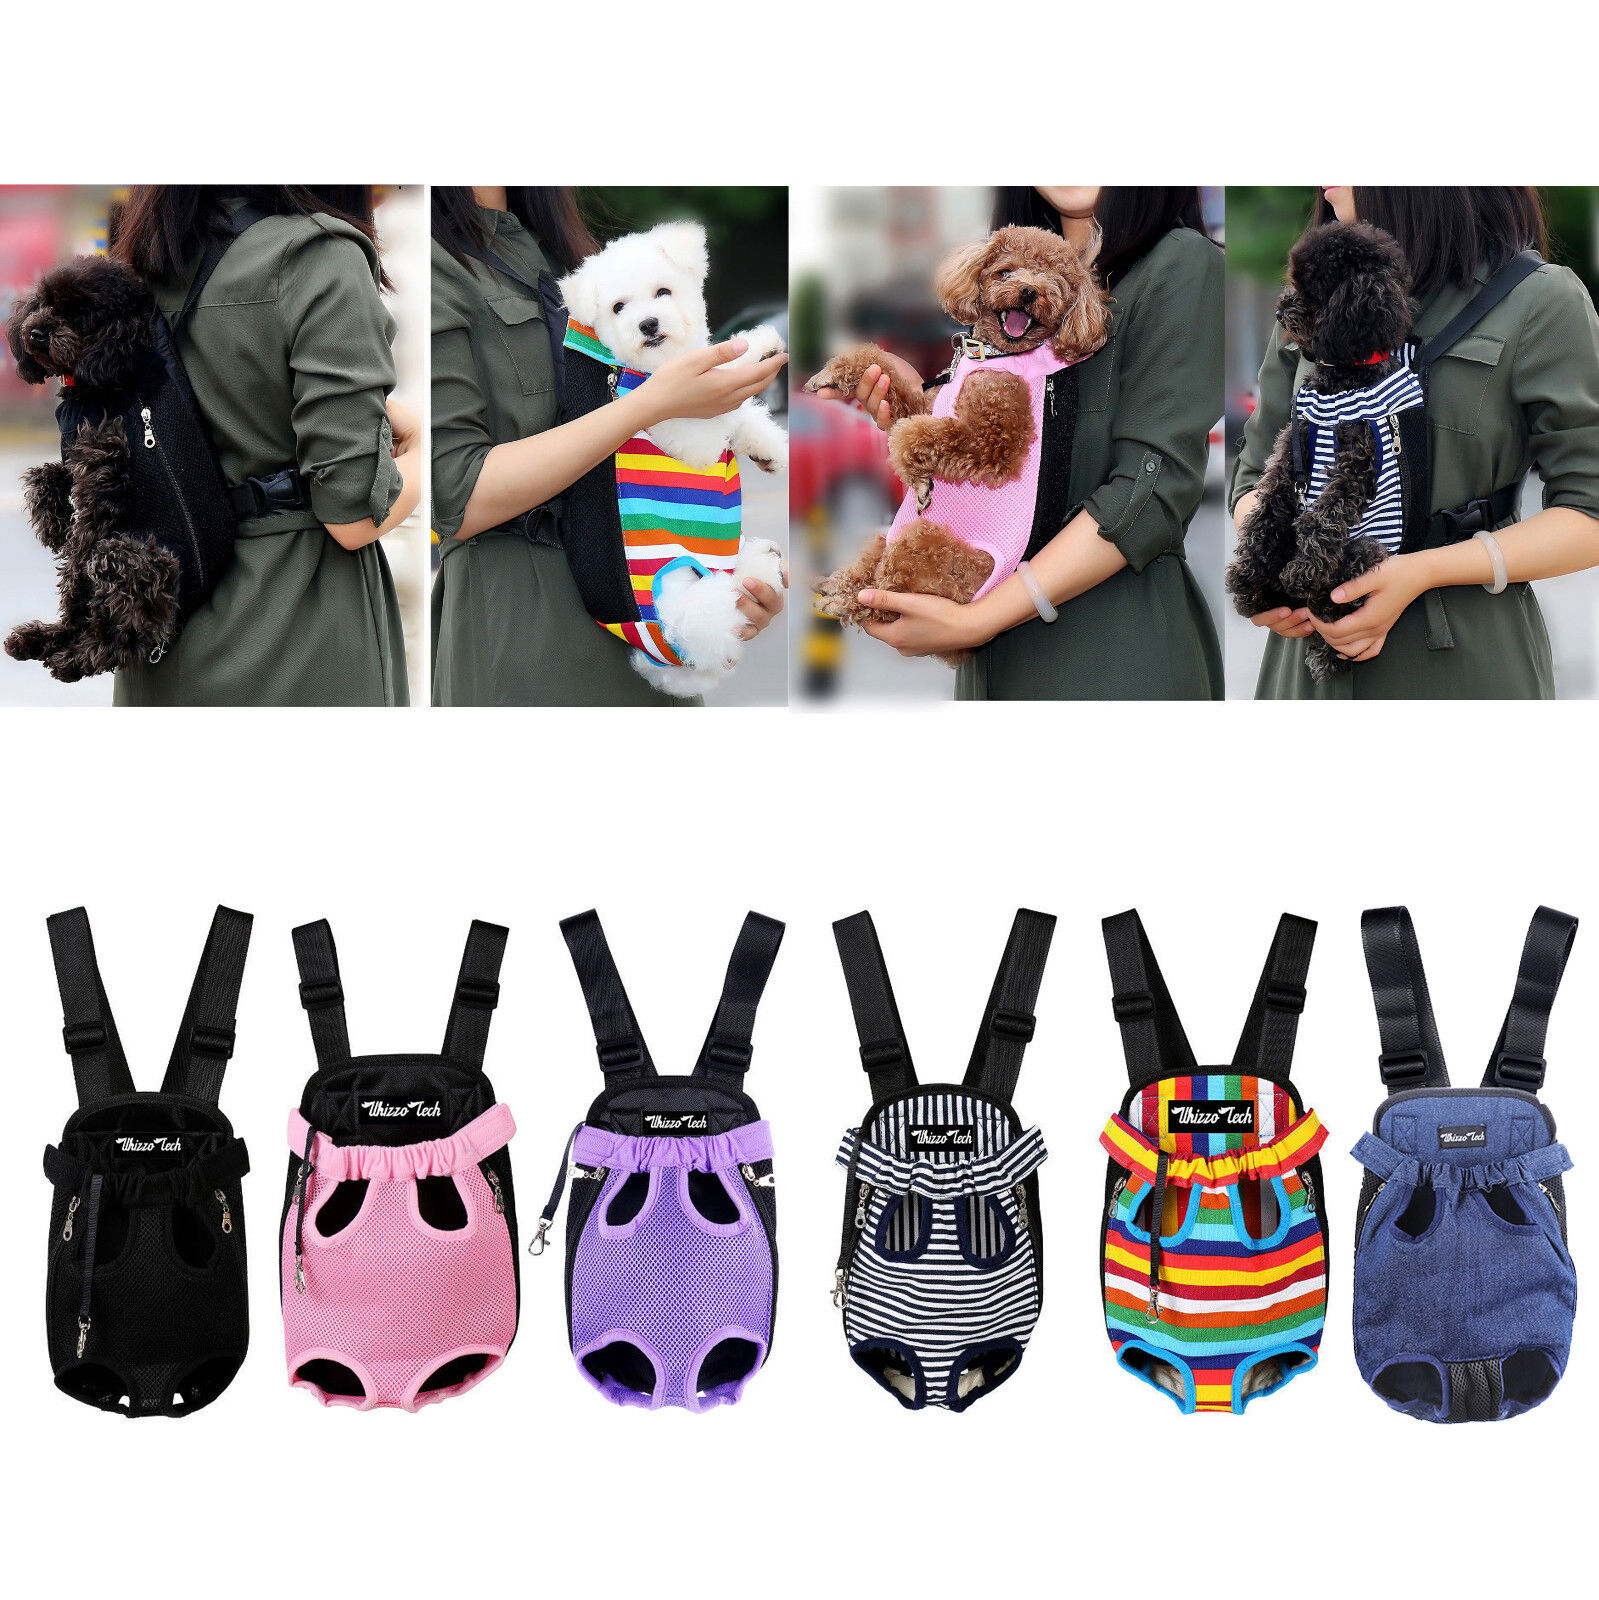 Pet Carrier Backpack Adjustable Pet Front Cat Dog Carrier Travel Bag Legs Out Carriers & Totes